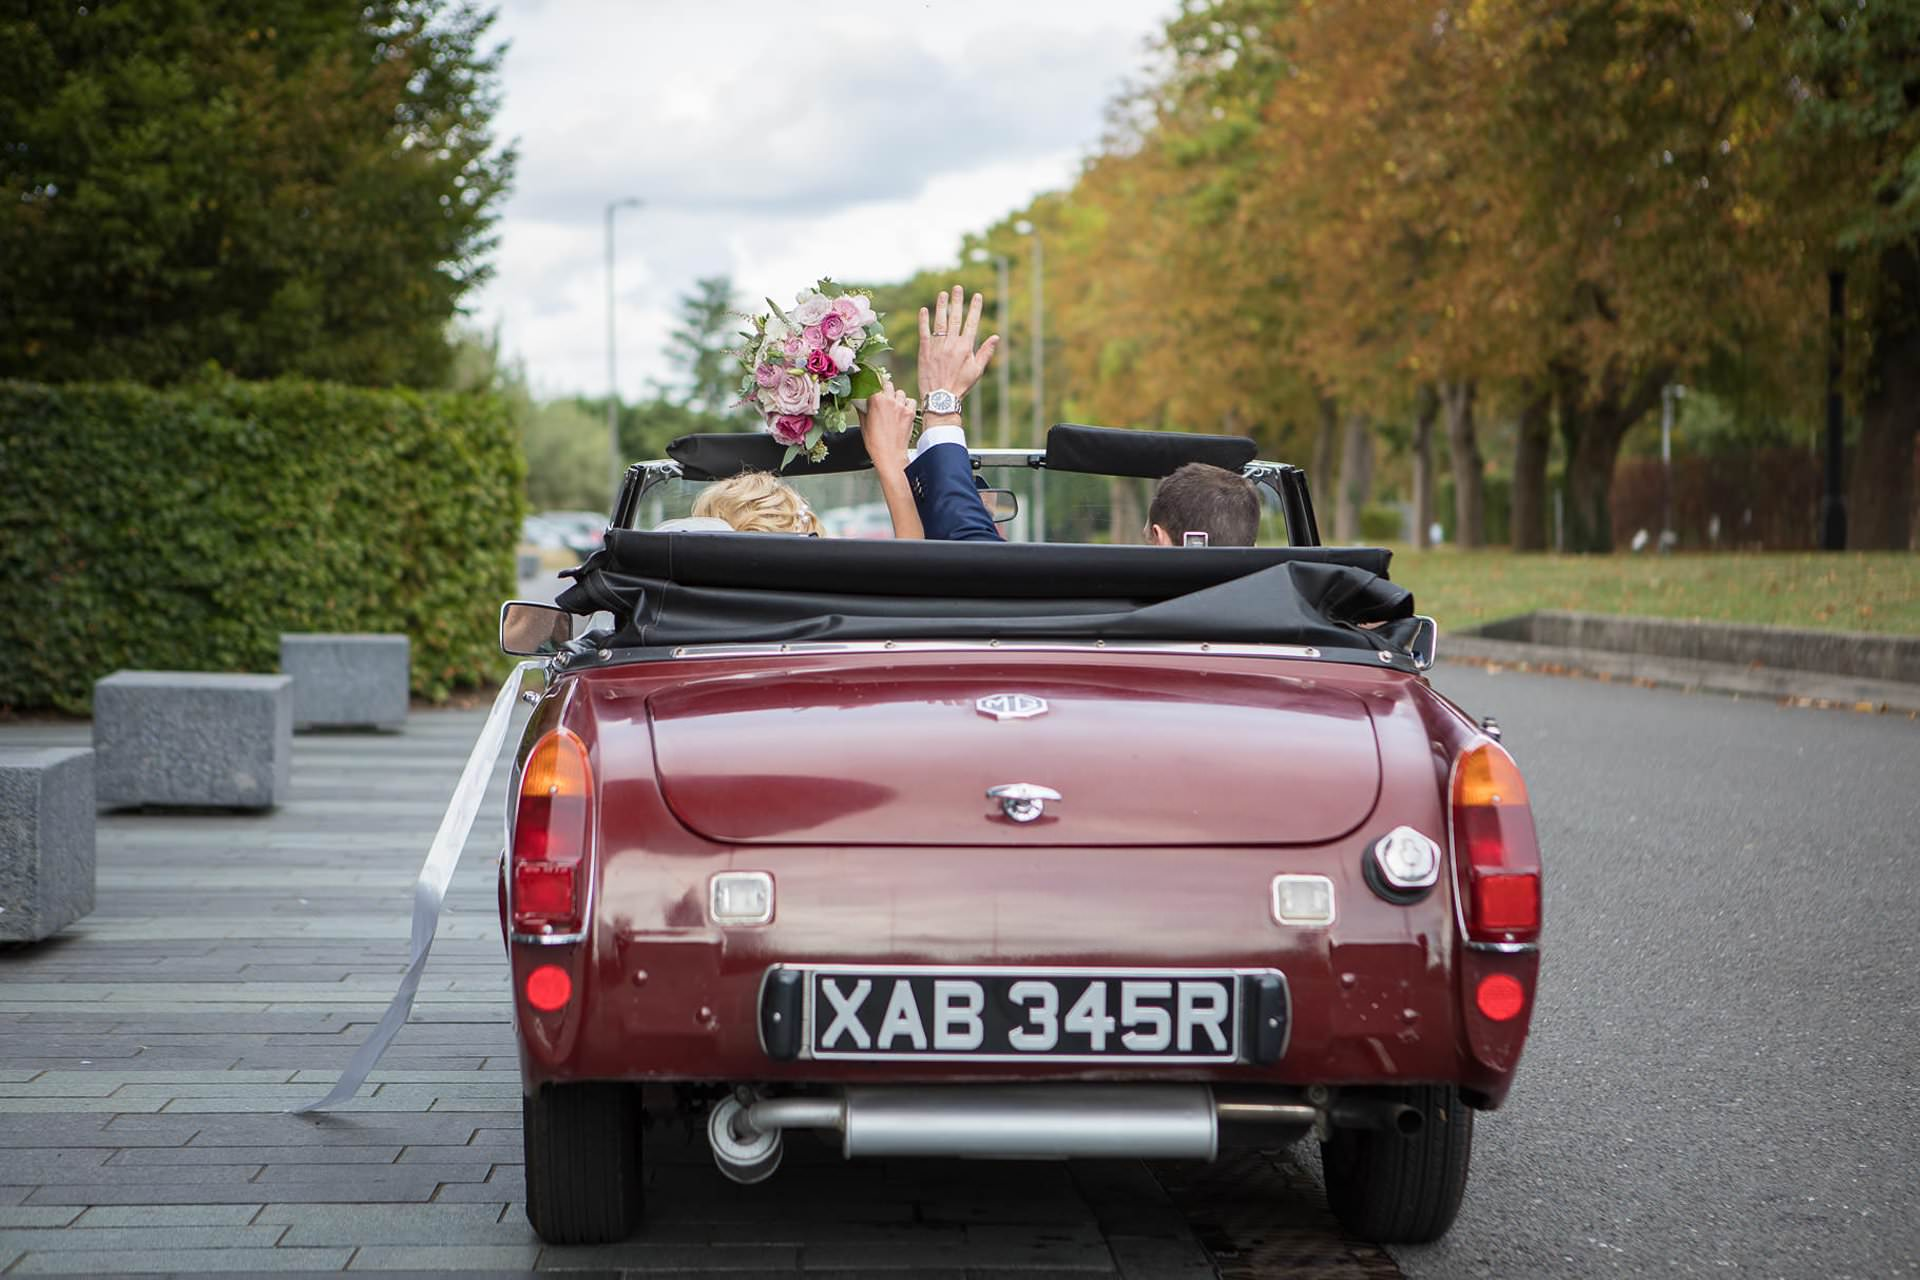 MG car leaves the Aviator, and the bride and groom wave goodbye